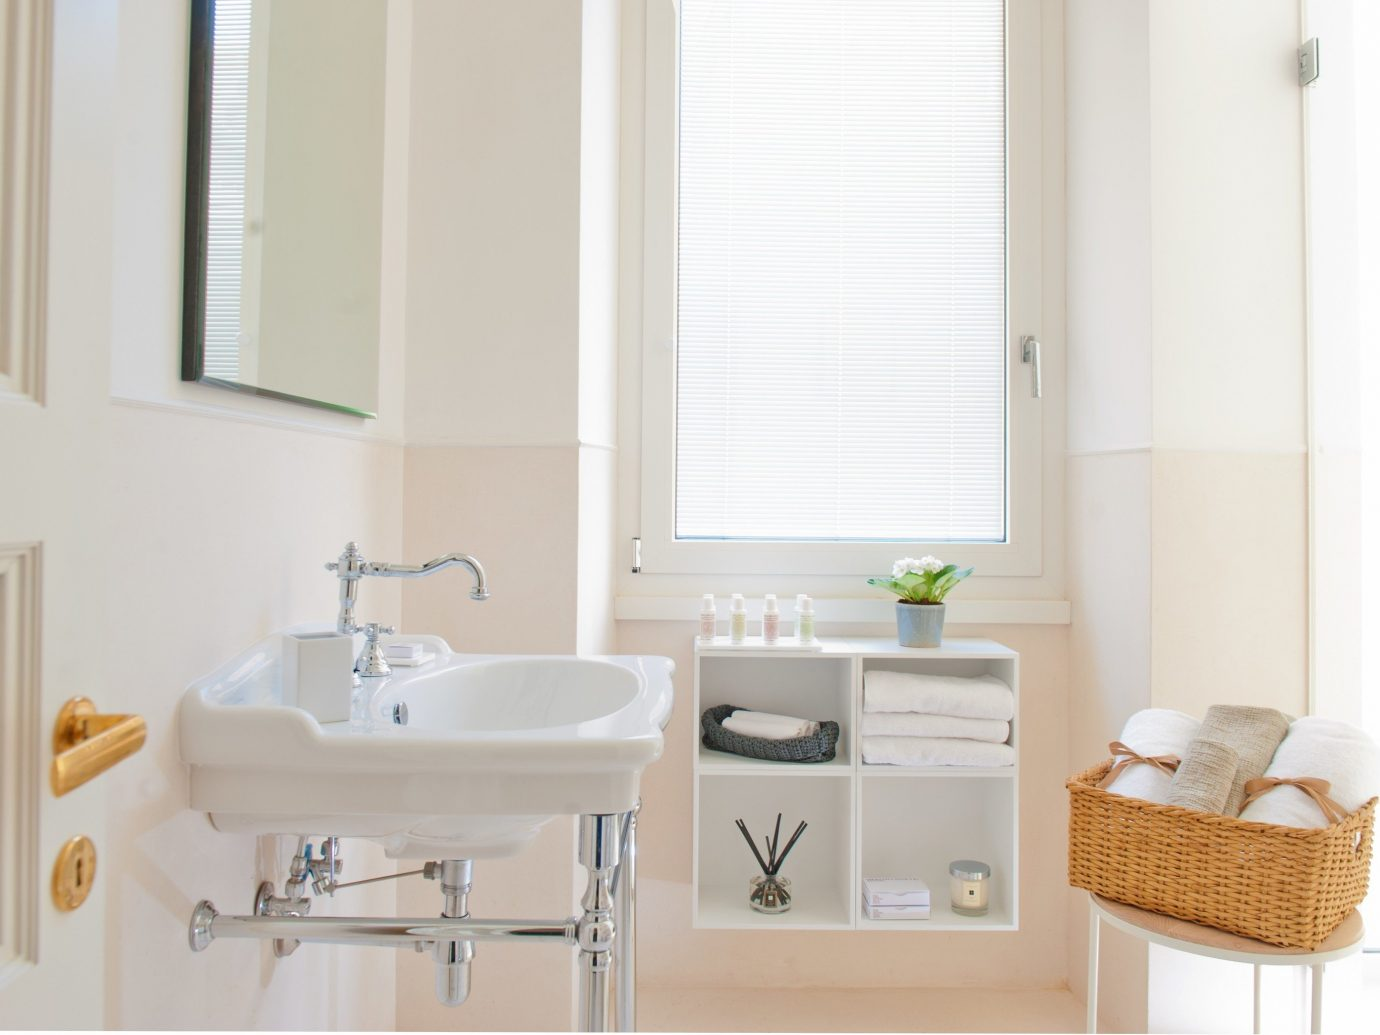 Boutique Hotels Hotels wall indoor bathroom window room tap bathroom accessory sink interior design product plumbing fixture home product design bathroom sink bathroom cabinet ceramic toilet seat containing